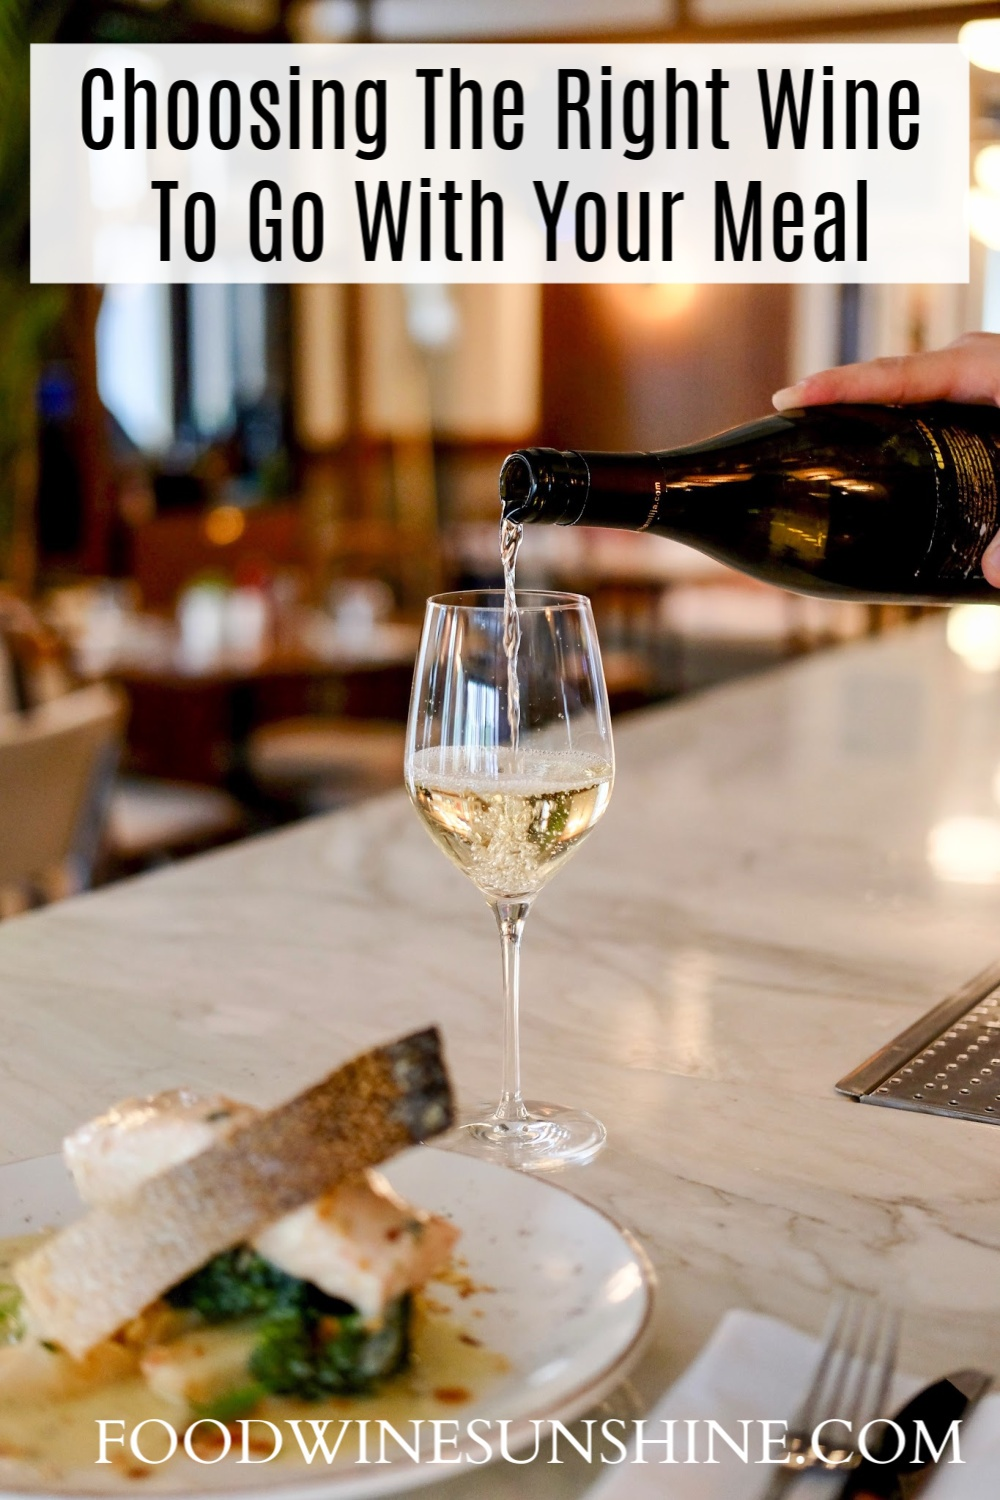 Choosing the right wine to go with your meal